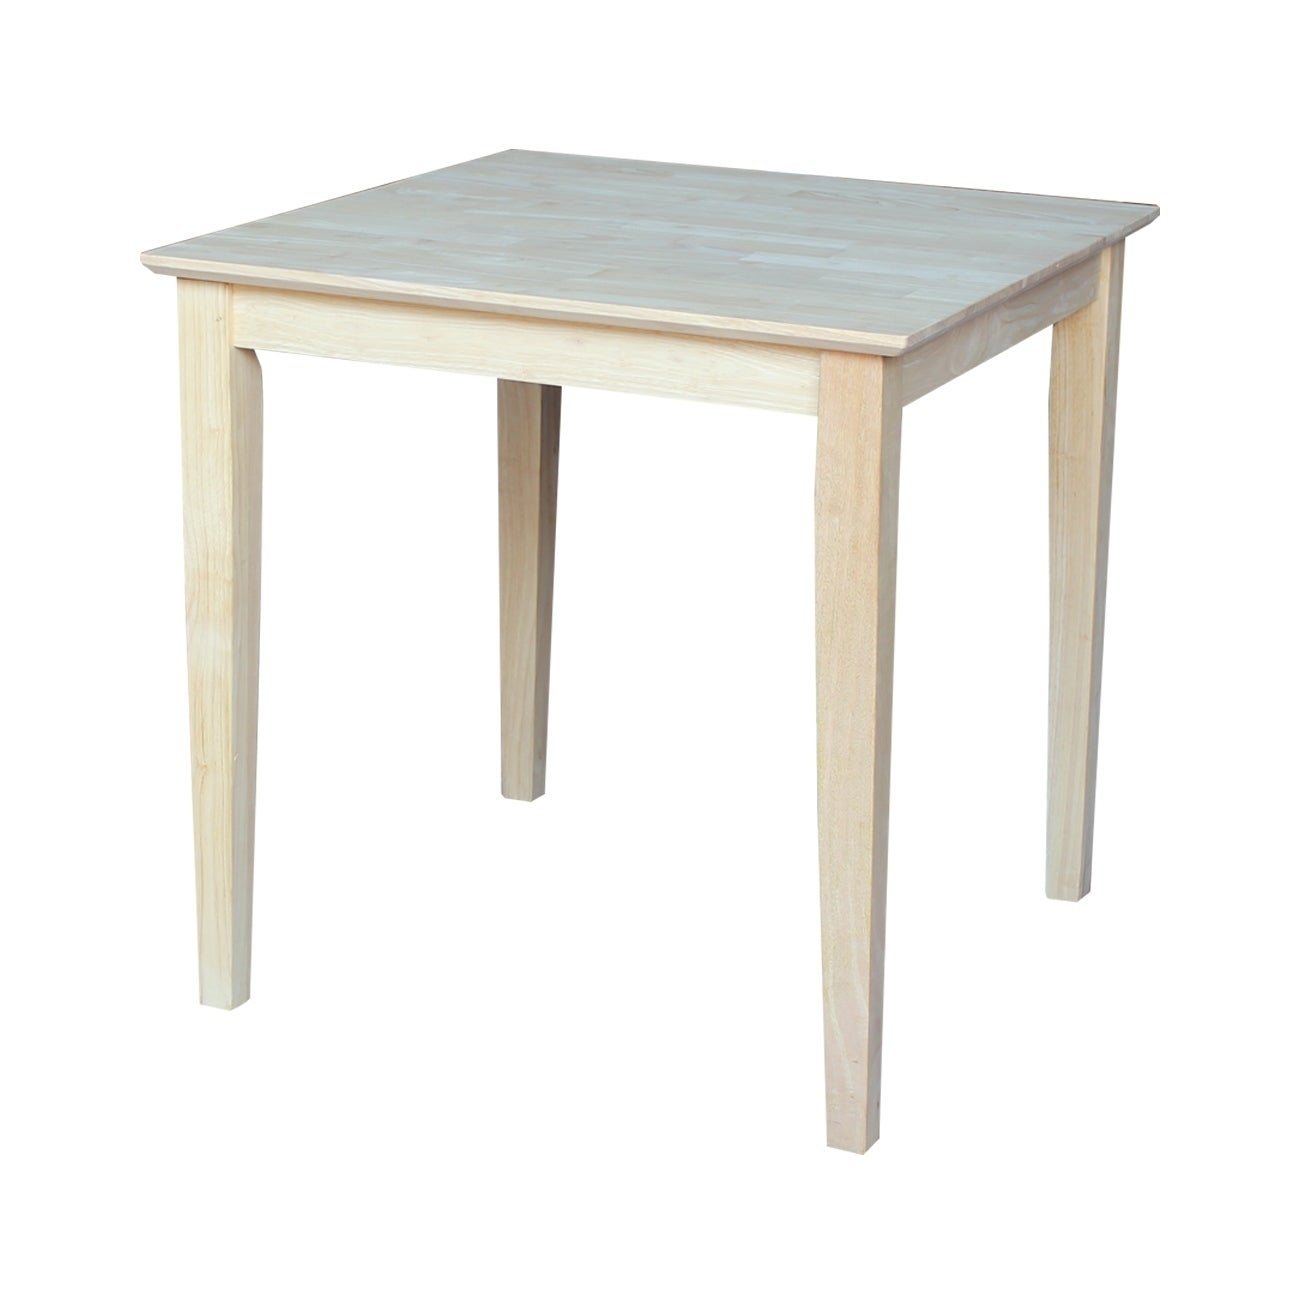 The Gray Barn Fairy Glen 30 Inch Unfinished Shaker Style Parawood Square Dining Table